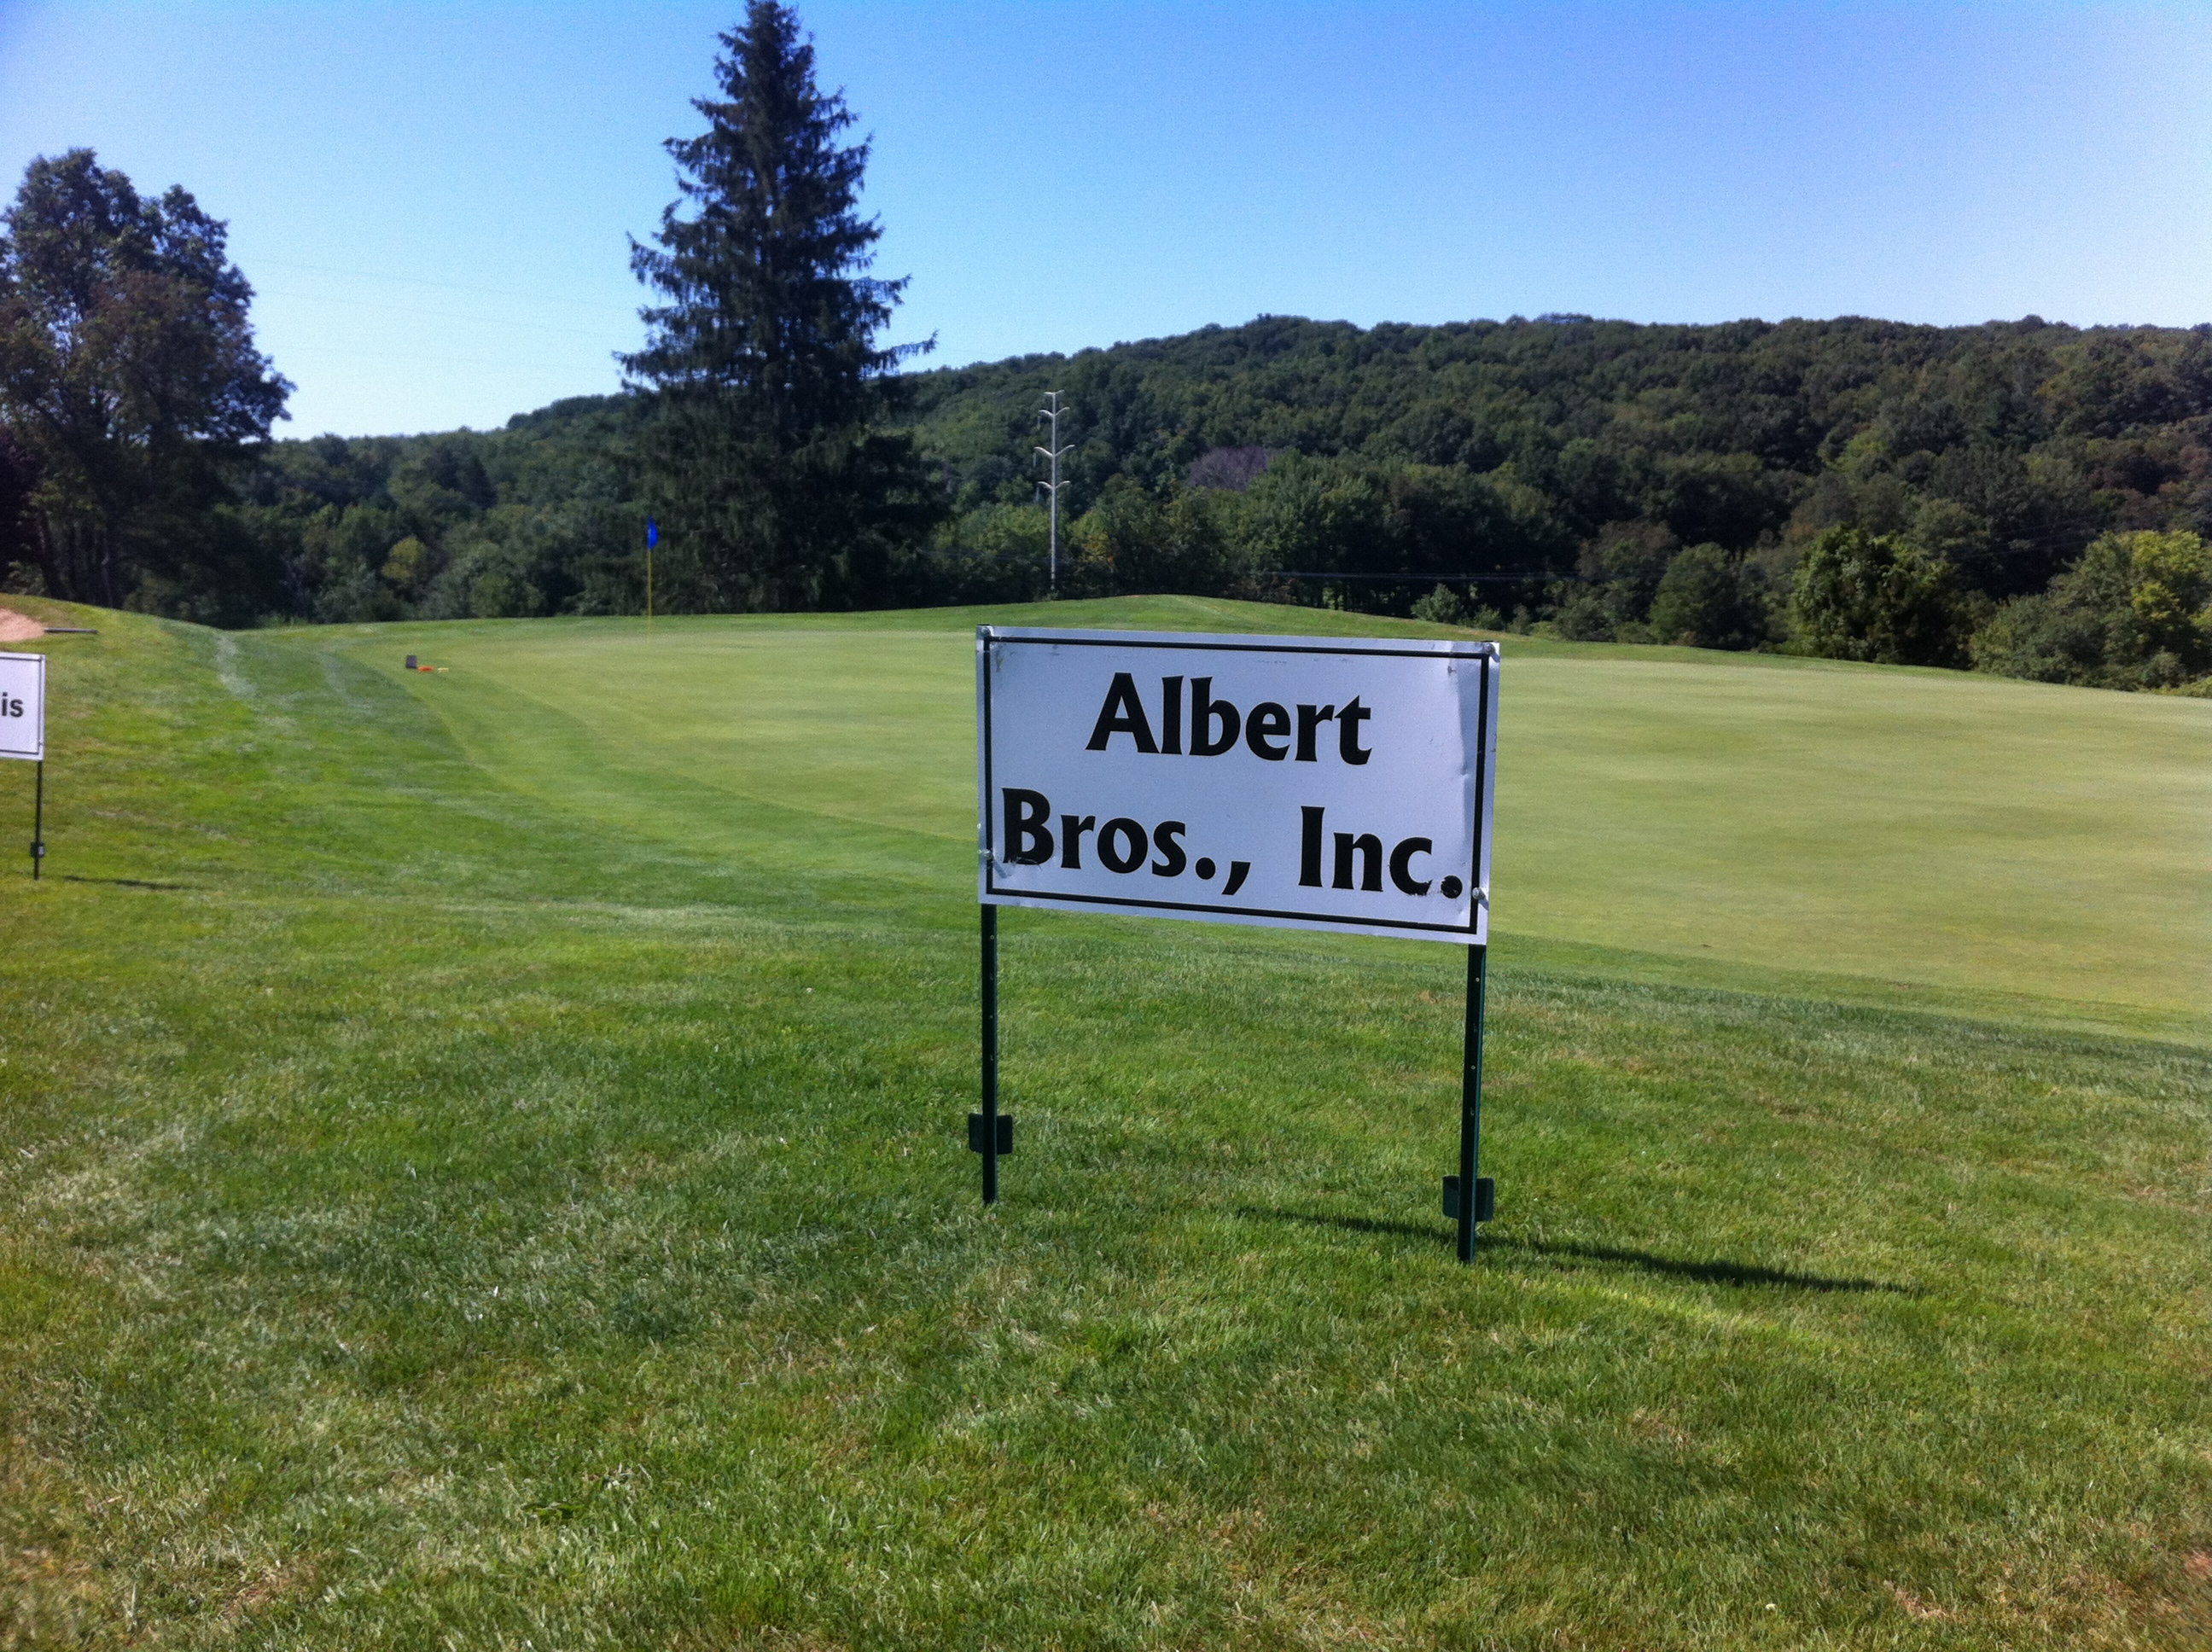 Albert Bros., Inc SMA Sponsorship